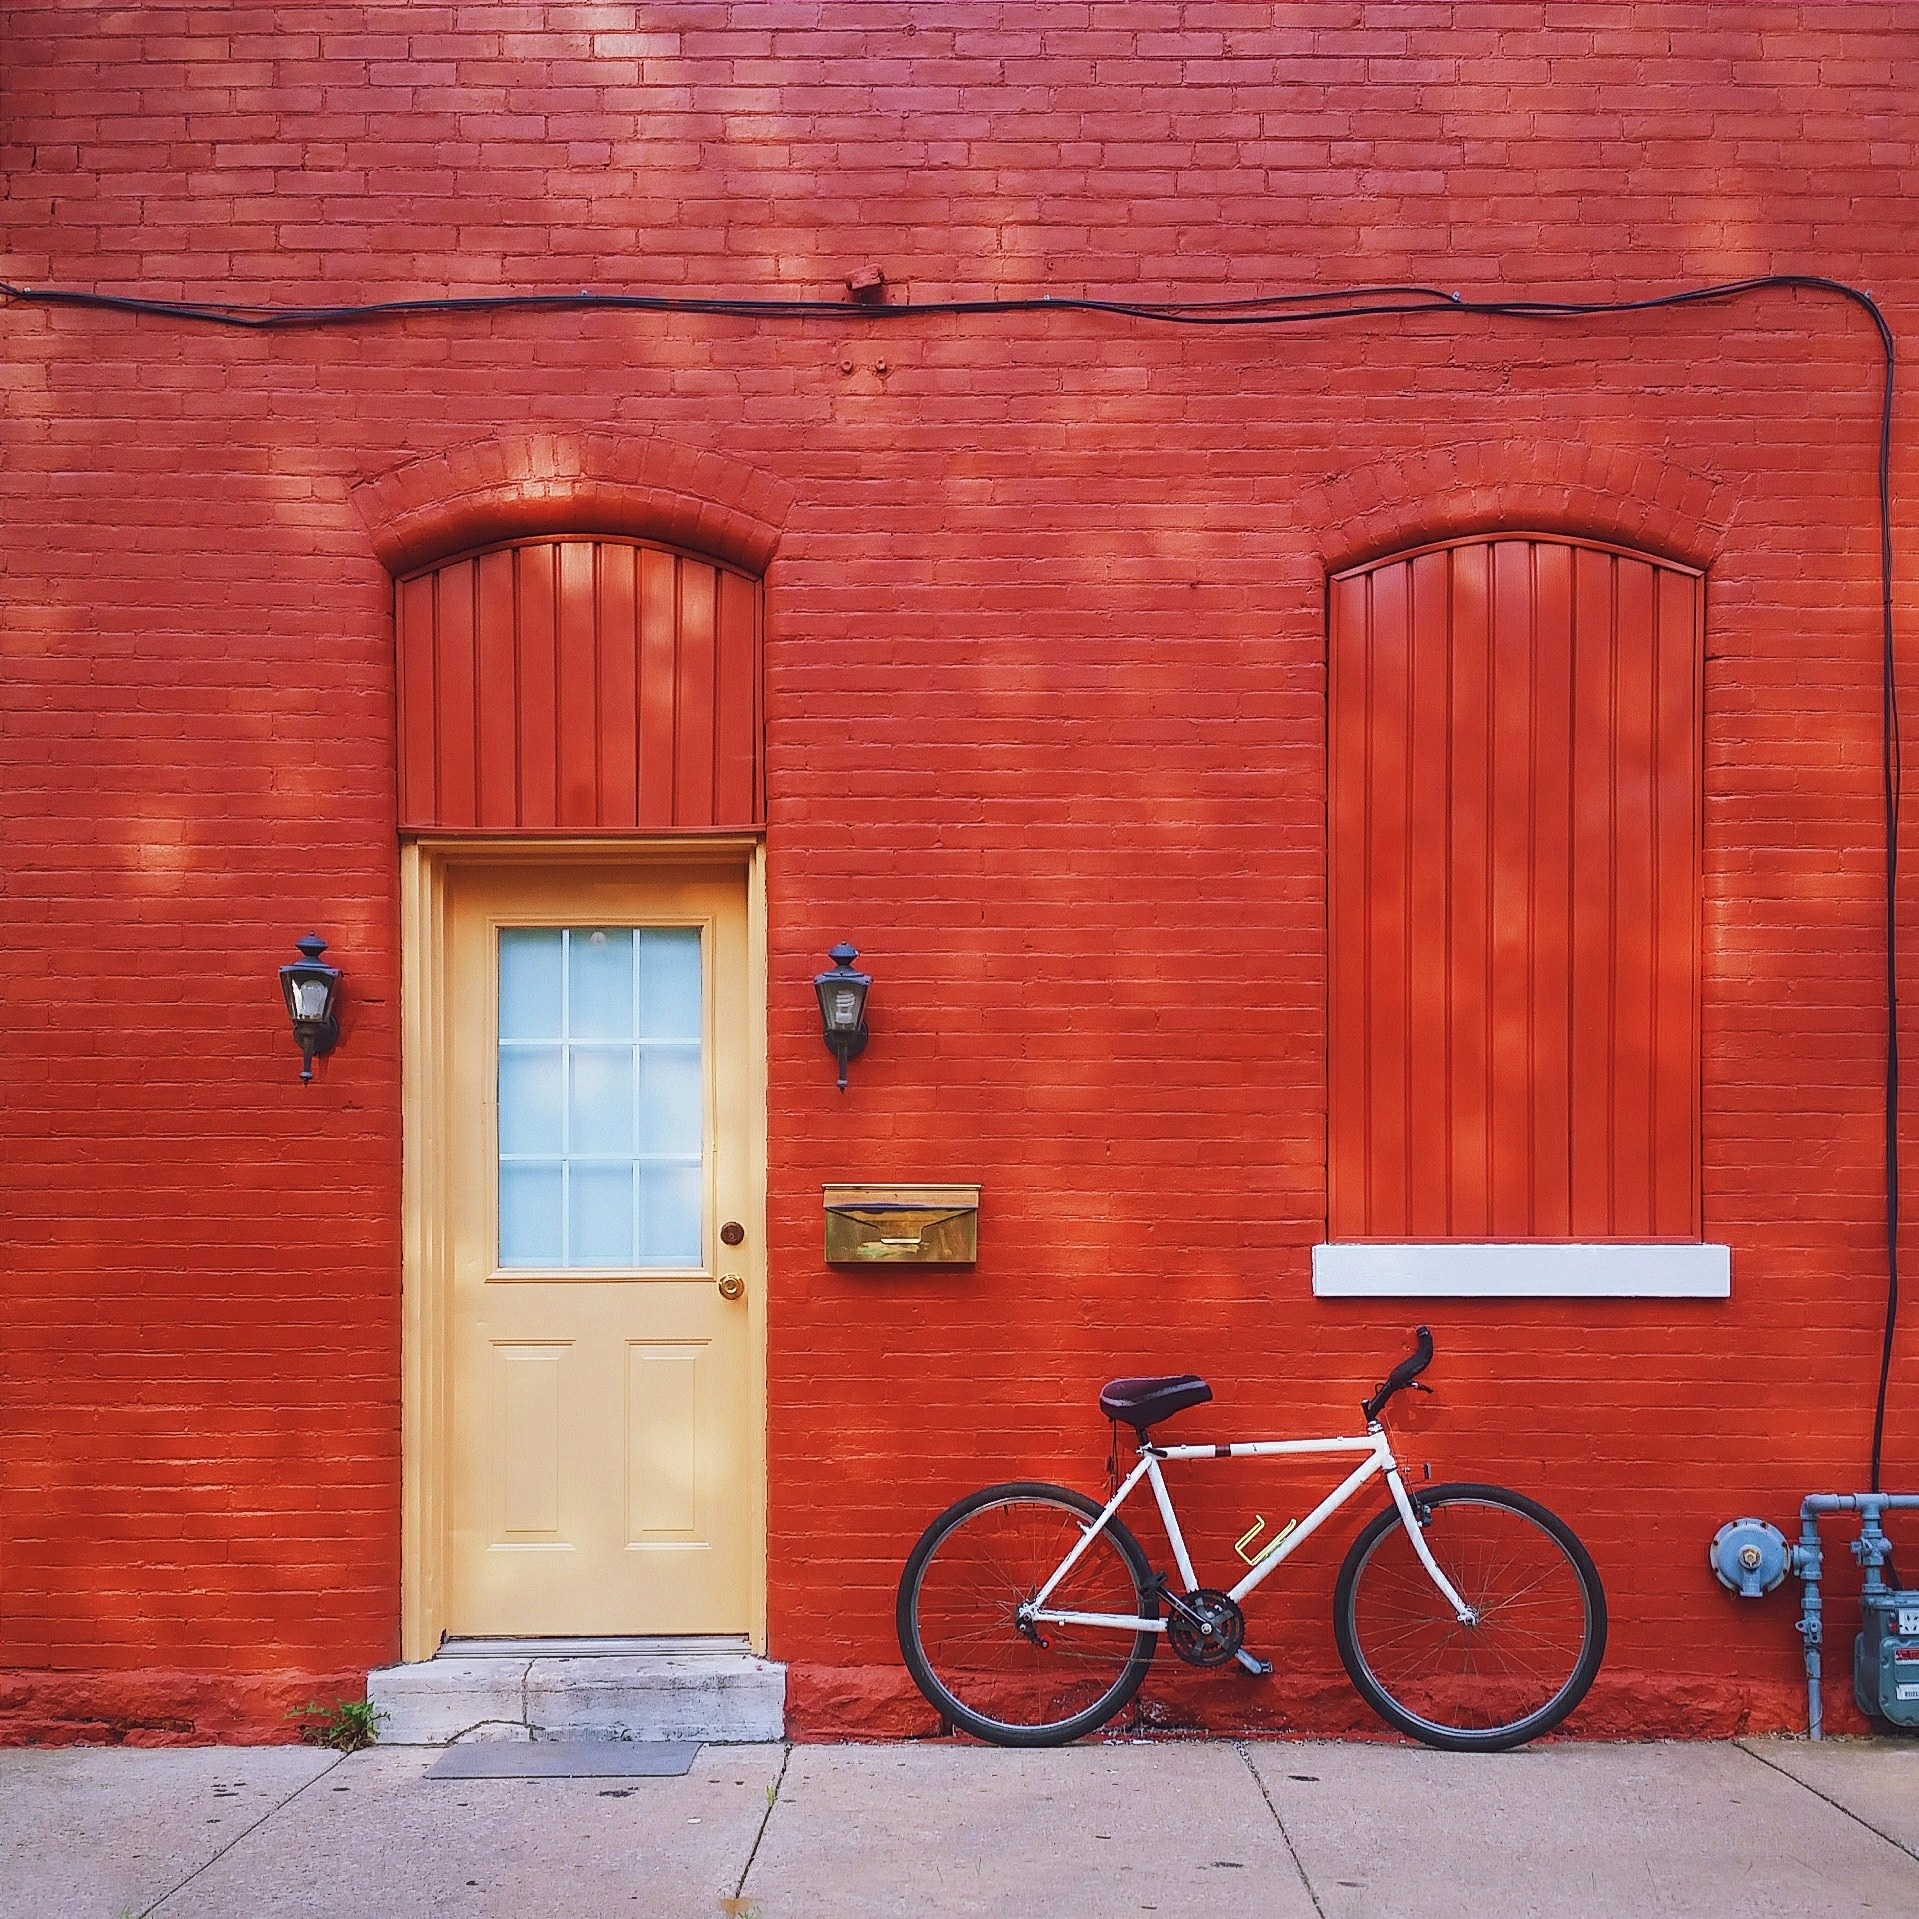 Red wall and bicycle